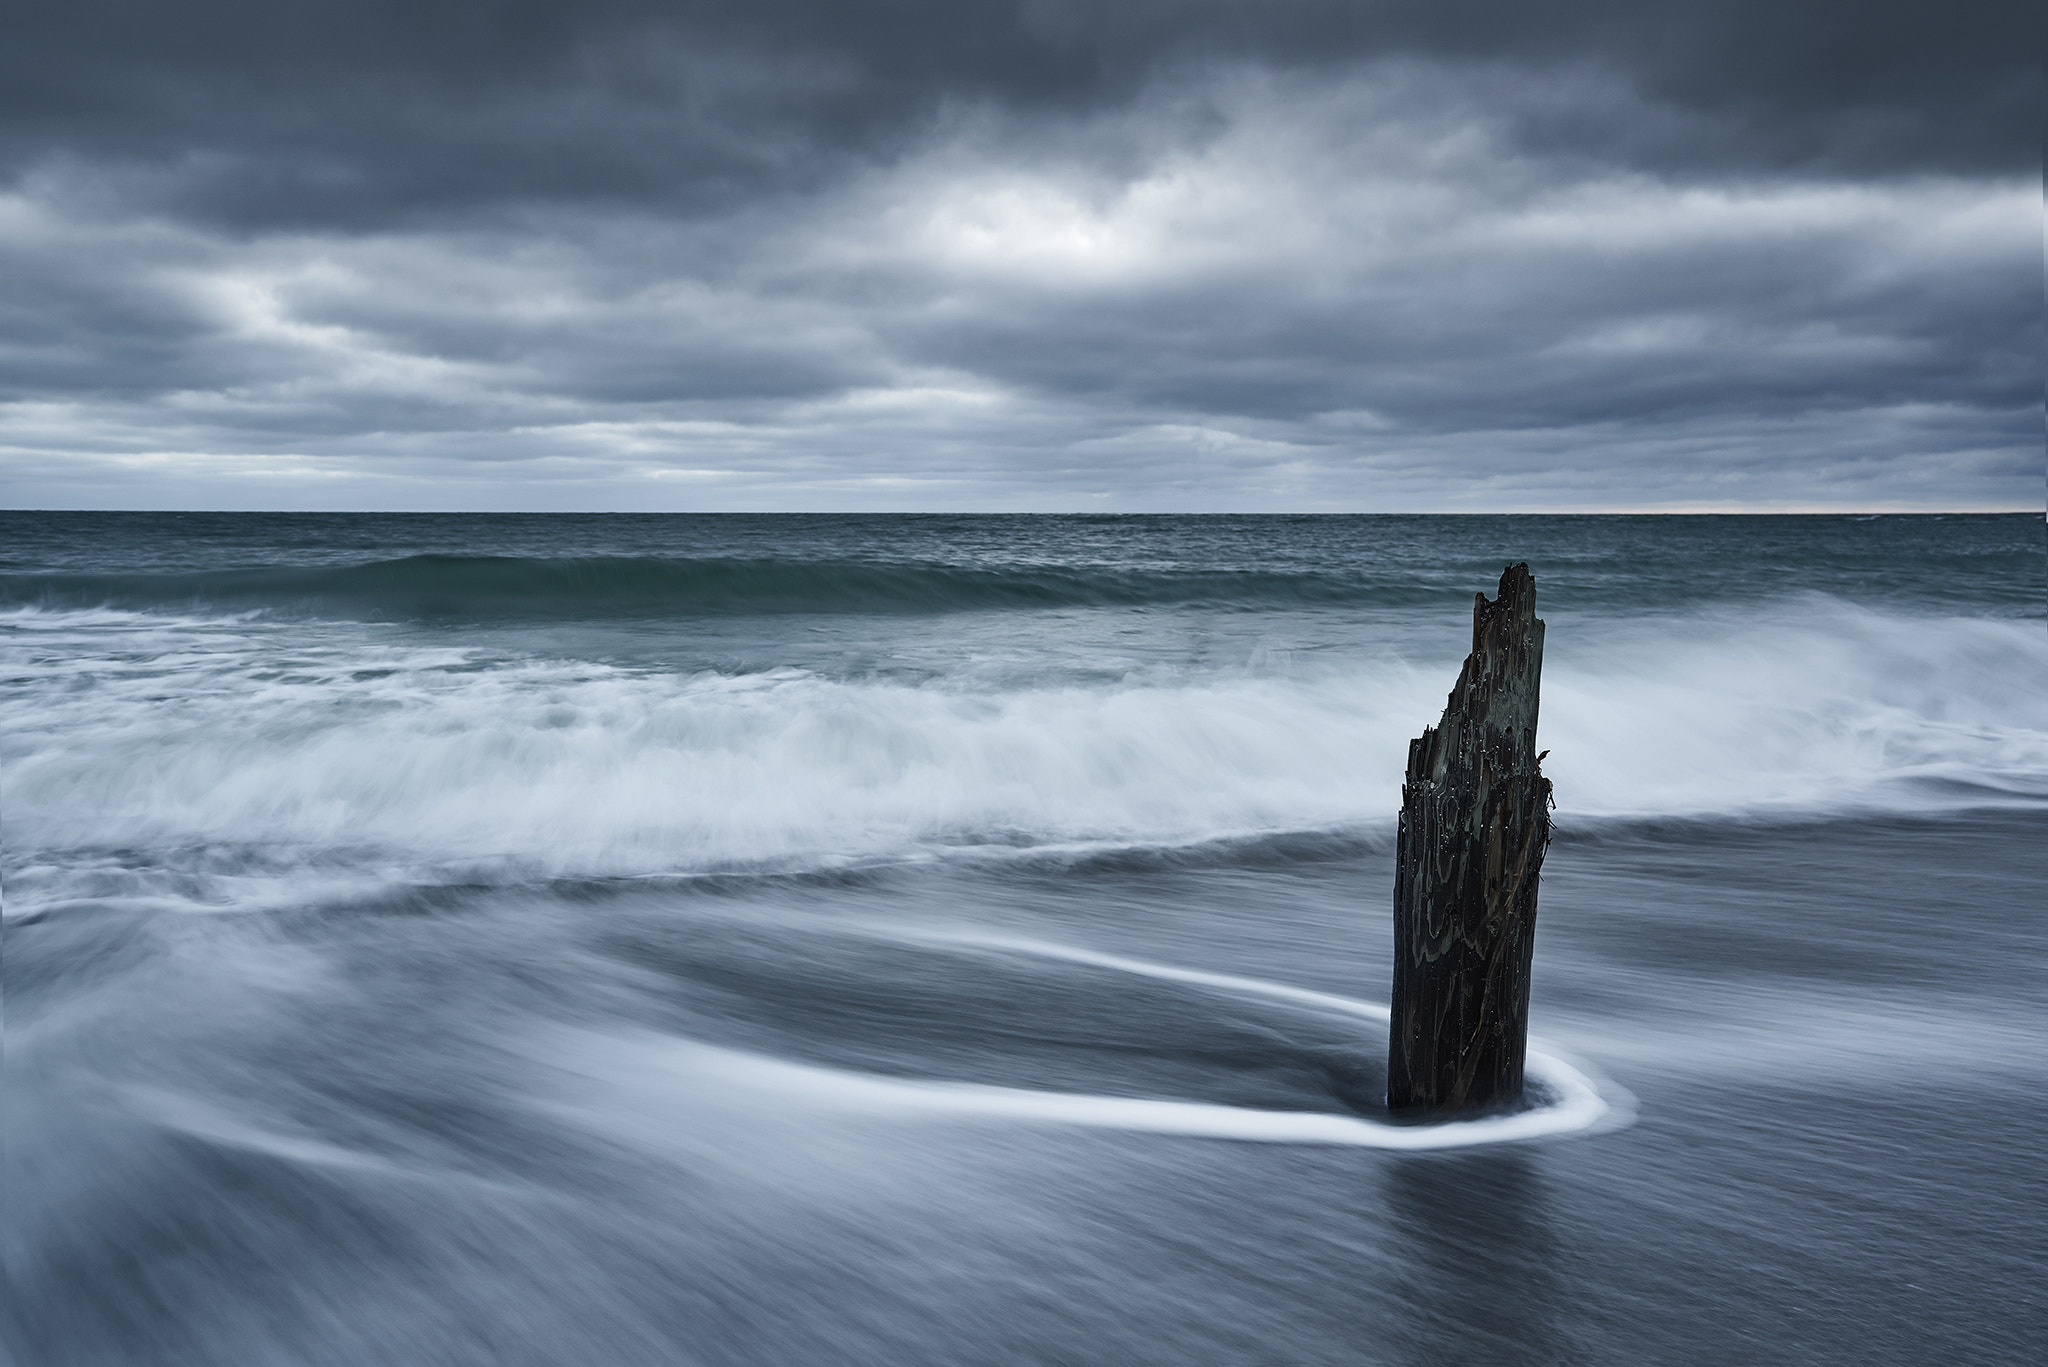 Photograph Withstand by Andrew Vernon on 500px